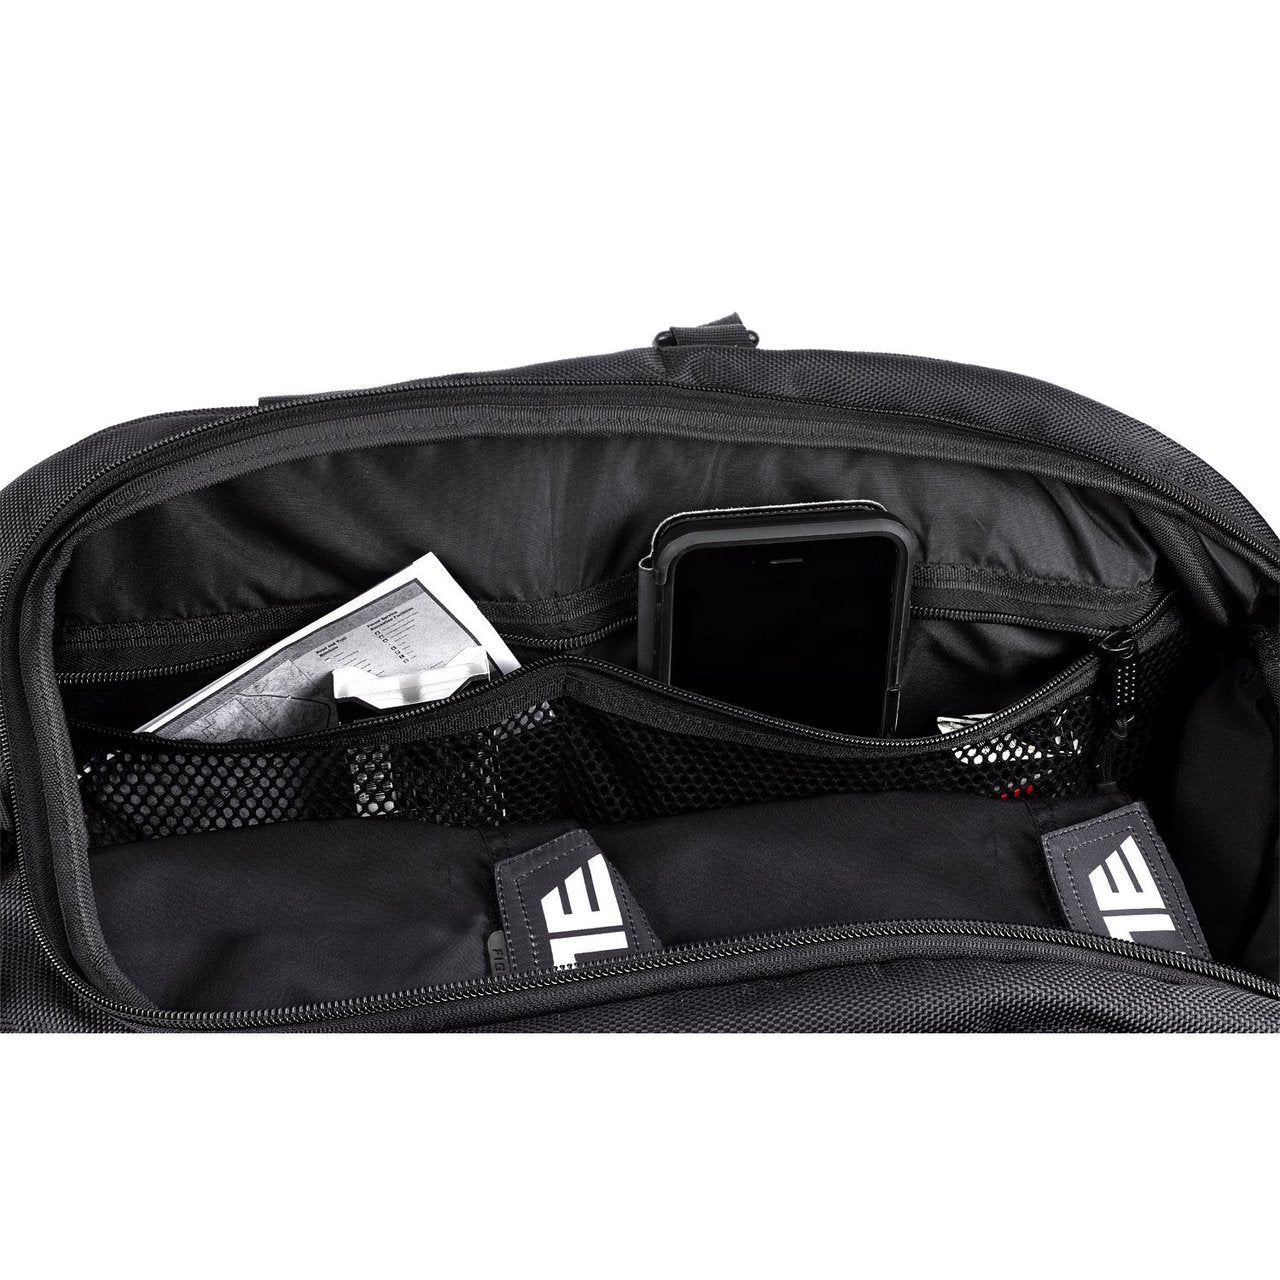 Load image into Gallery viewer, Elite Sports Warrior Series Black Large Duffel Training Gear Gym Bag & Backpack